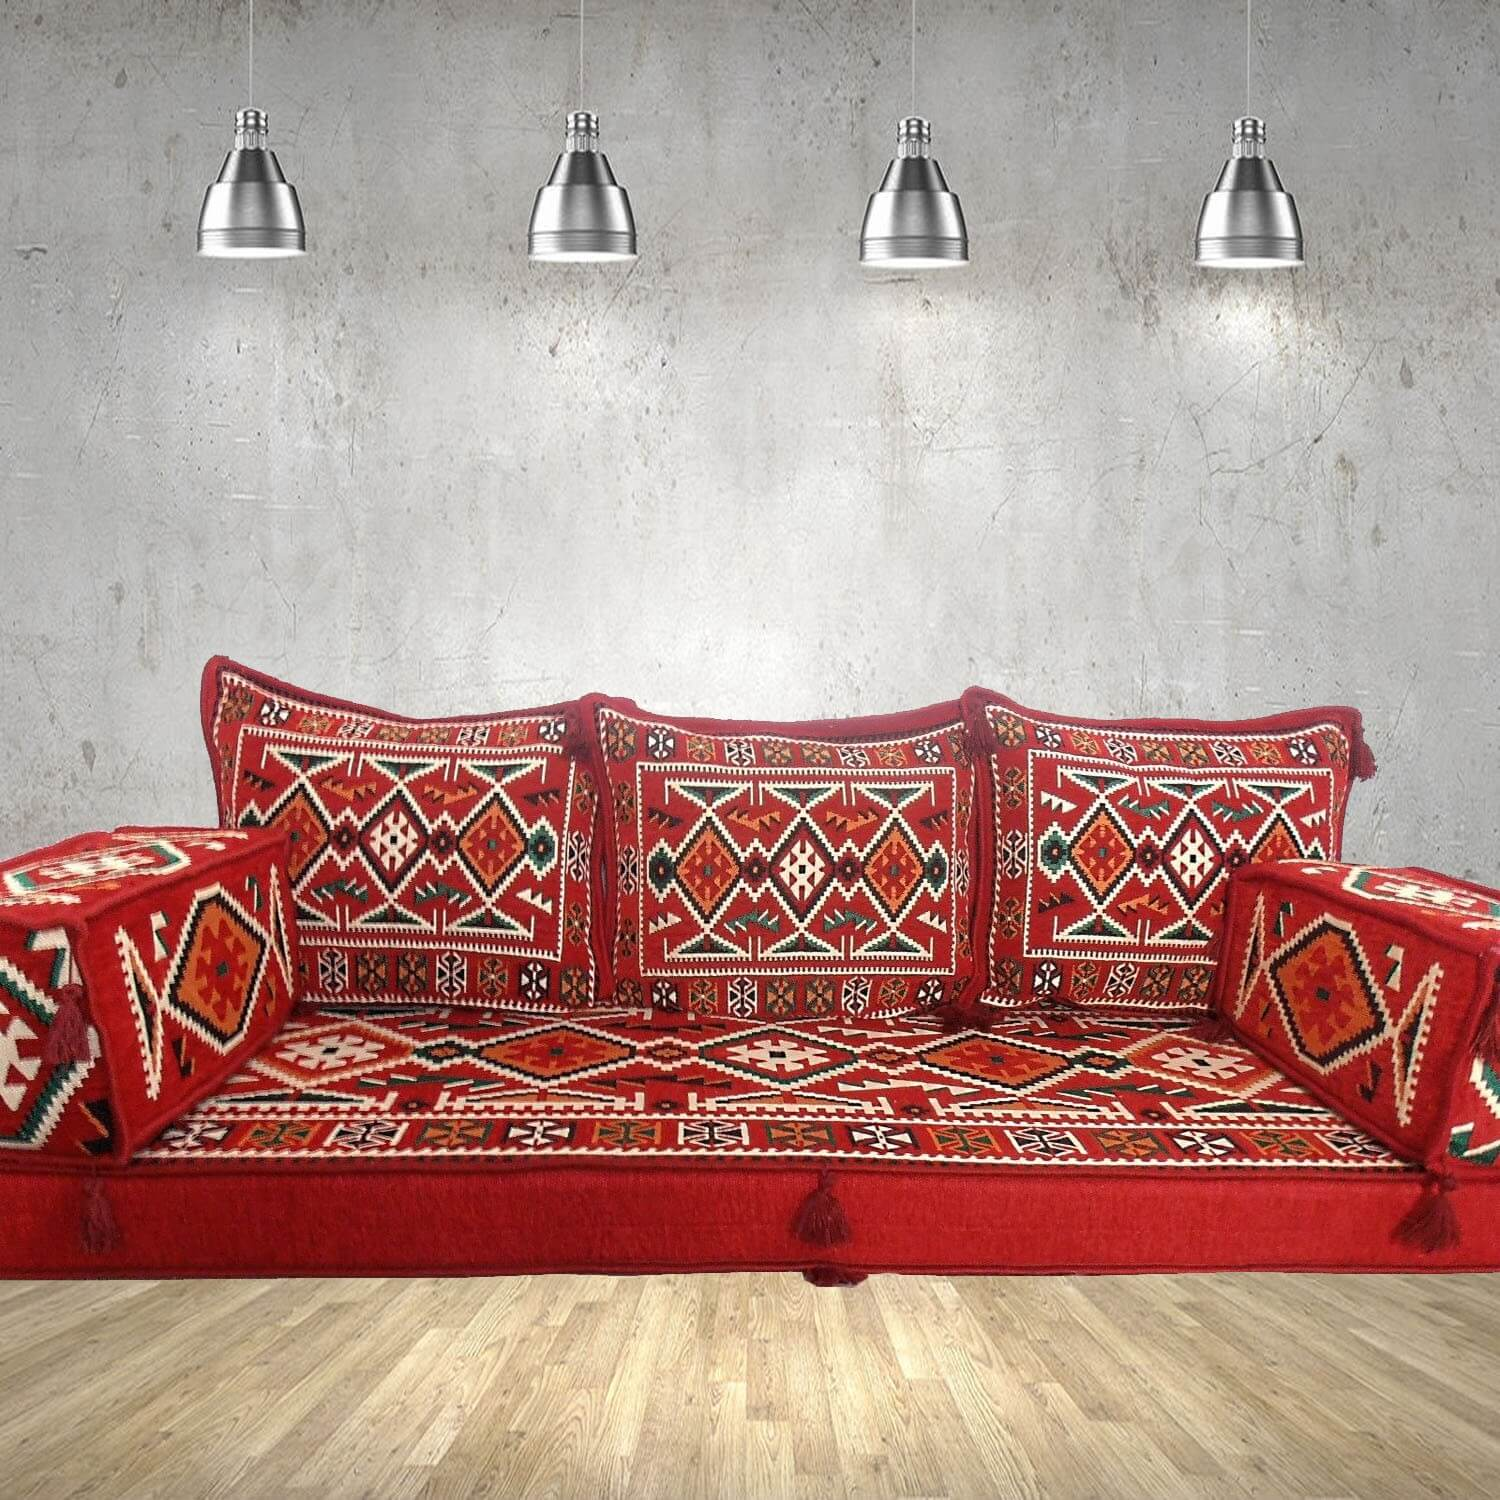 Floor sofa with triple back pillows - SHI_FS336